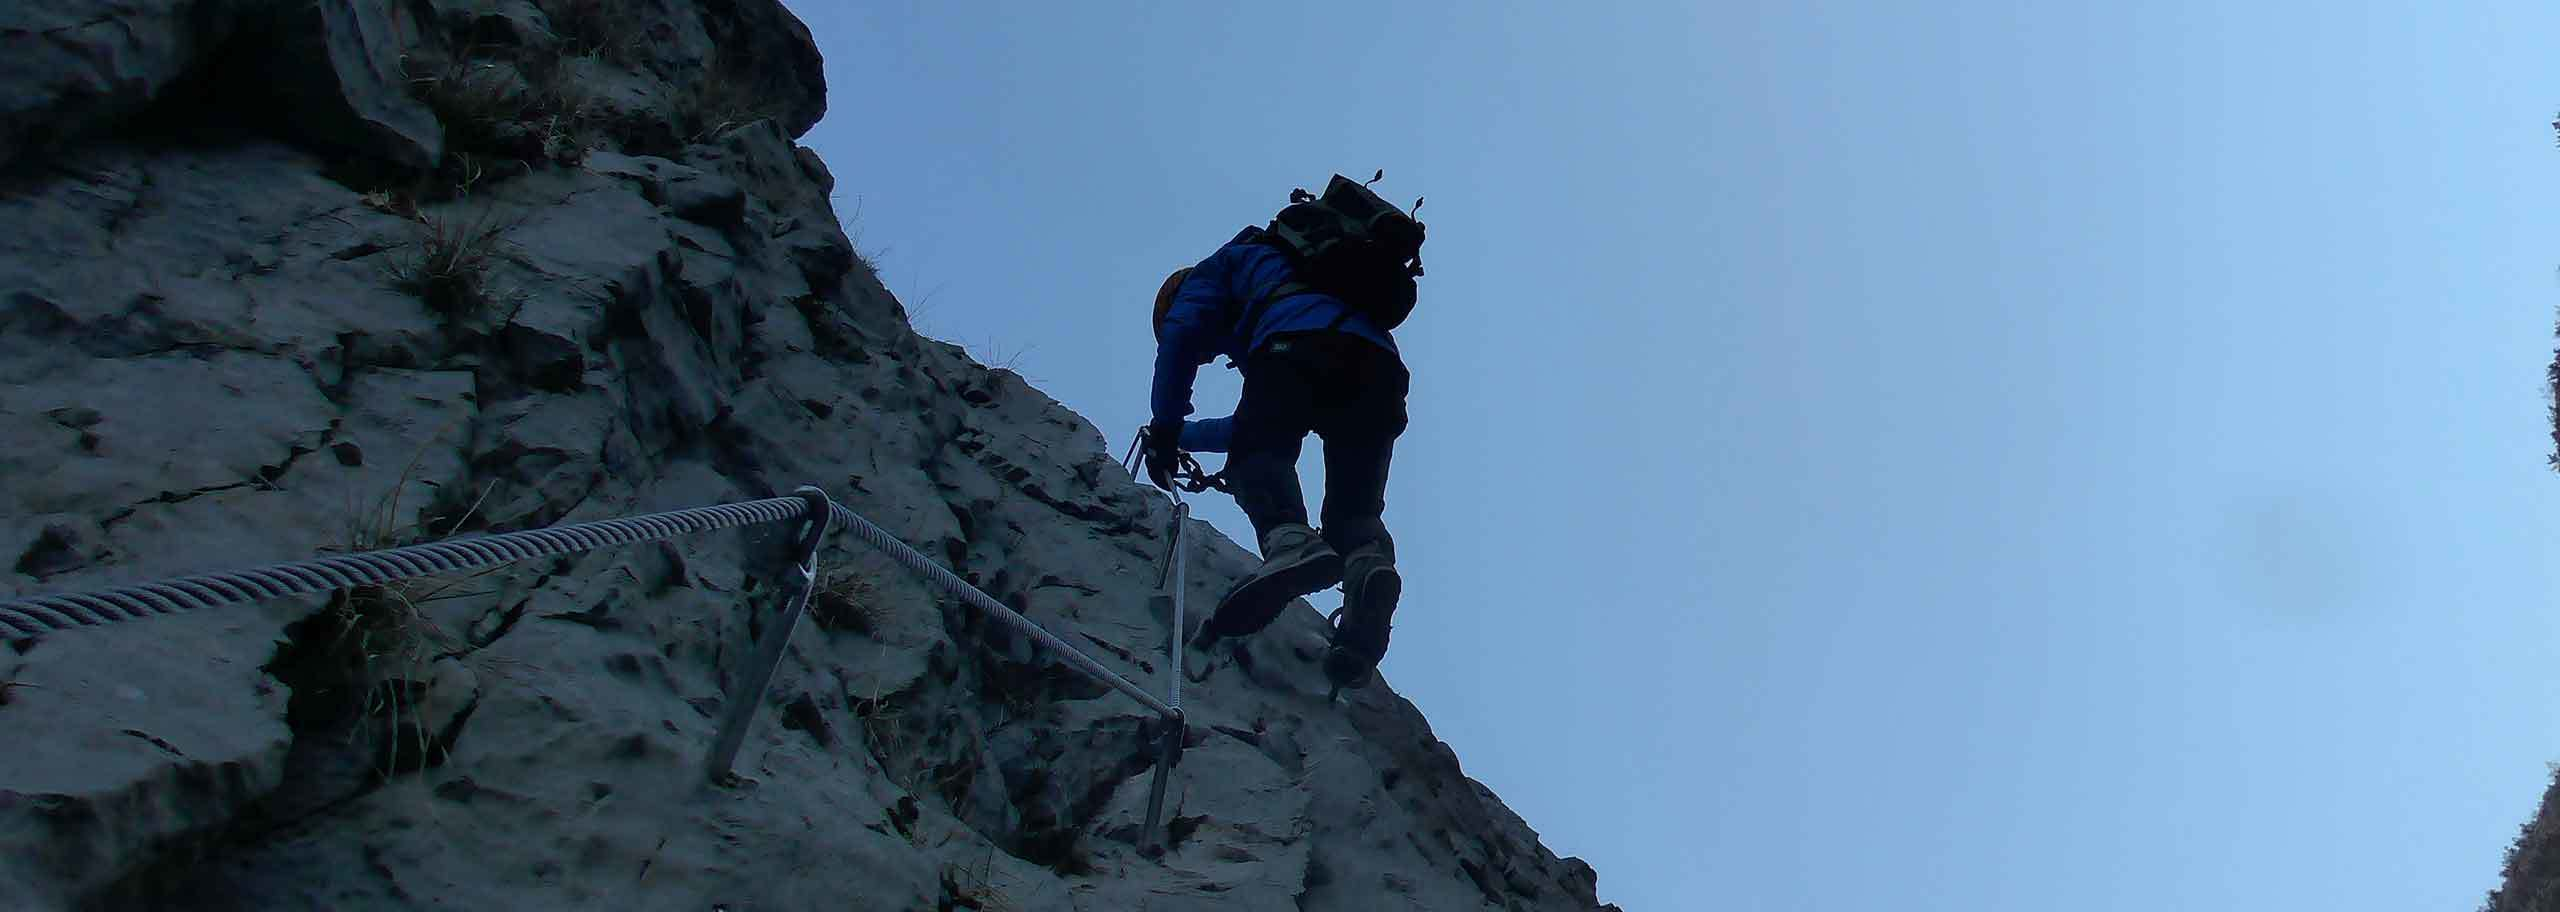 Via Ferrata in Gressoney with Mountain Guide